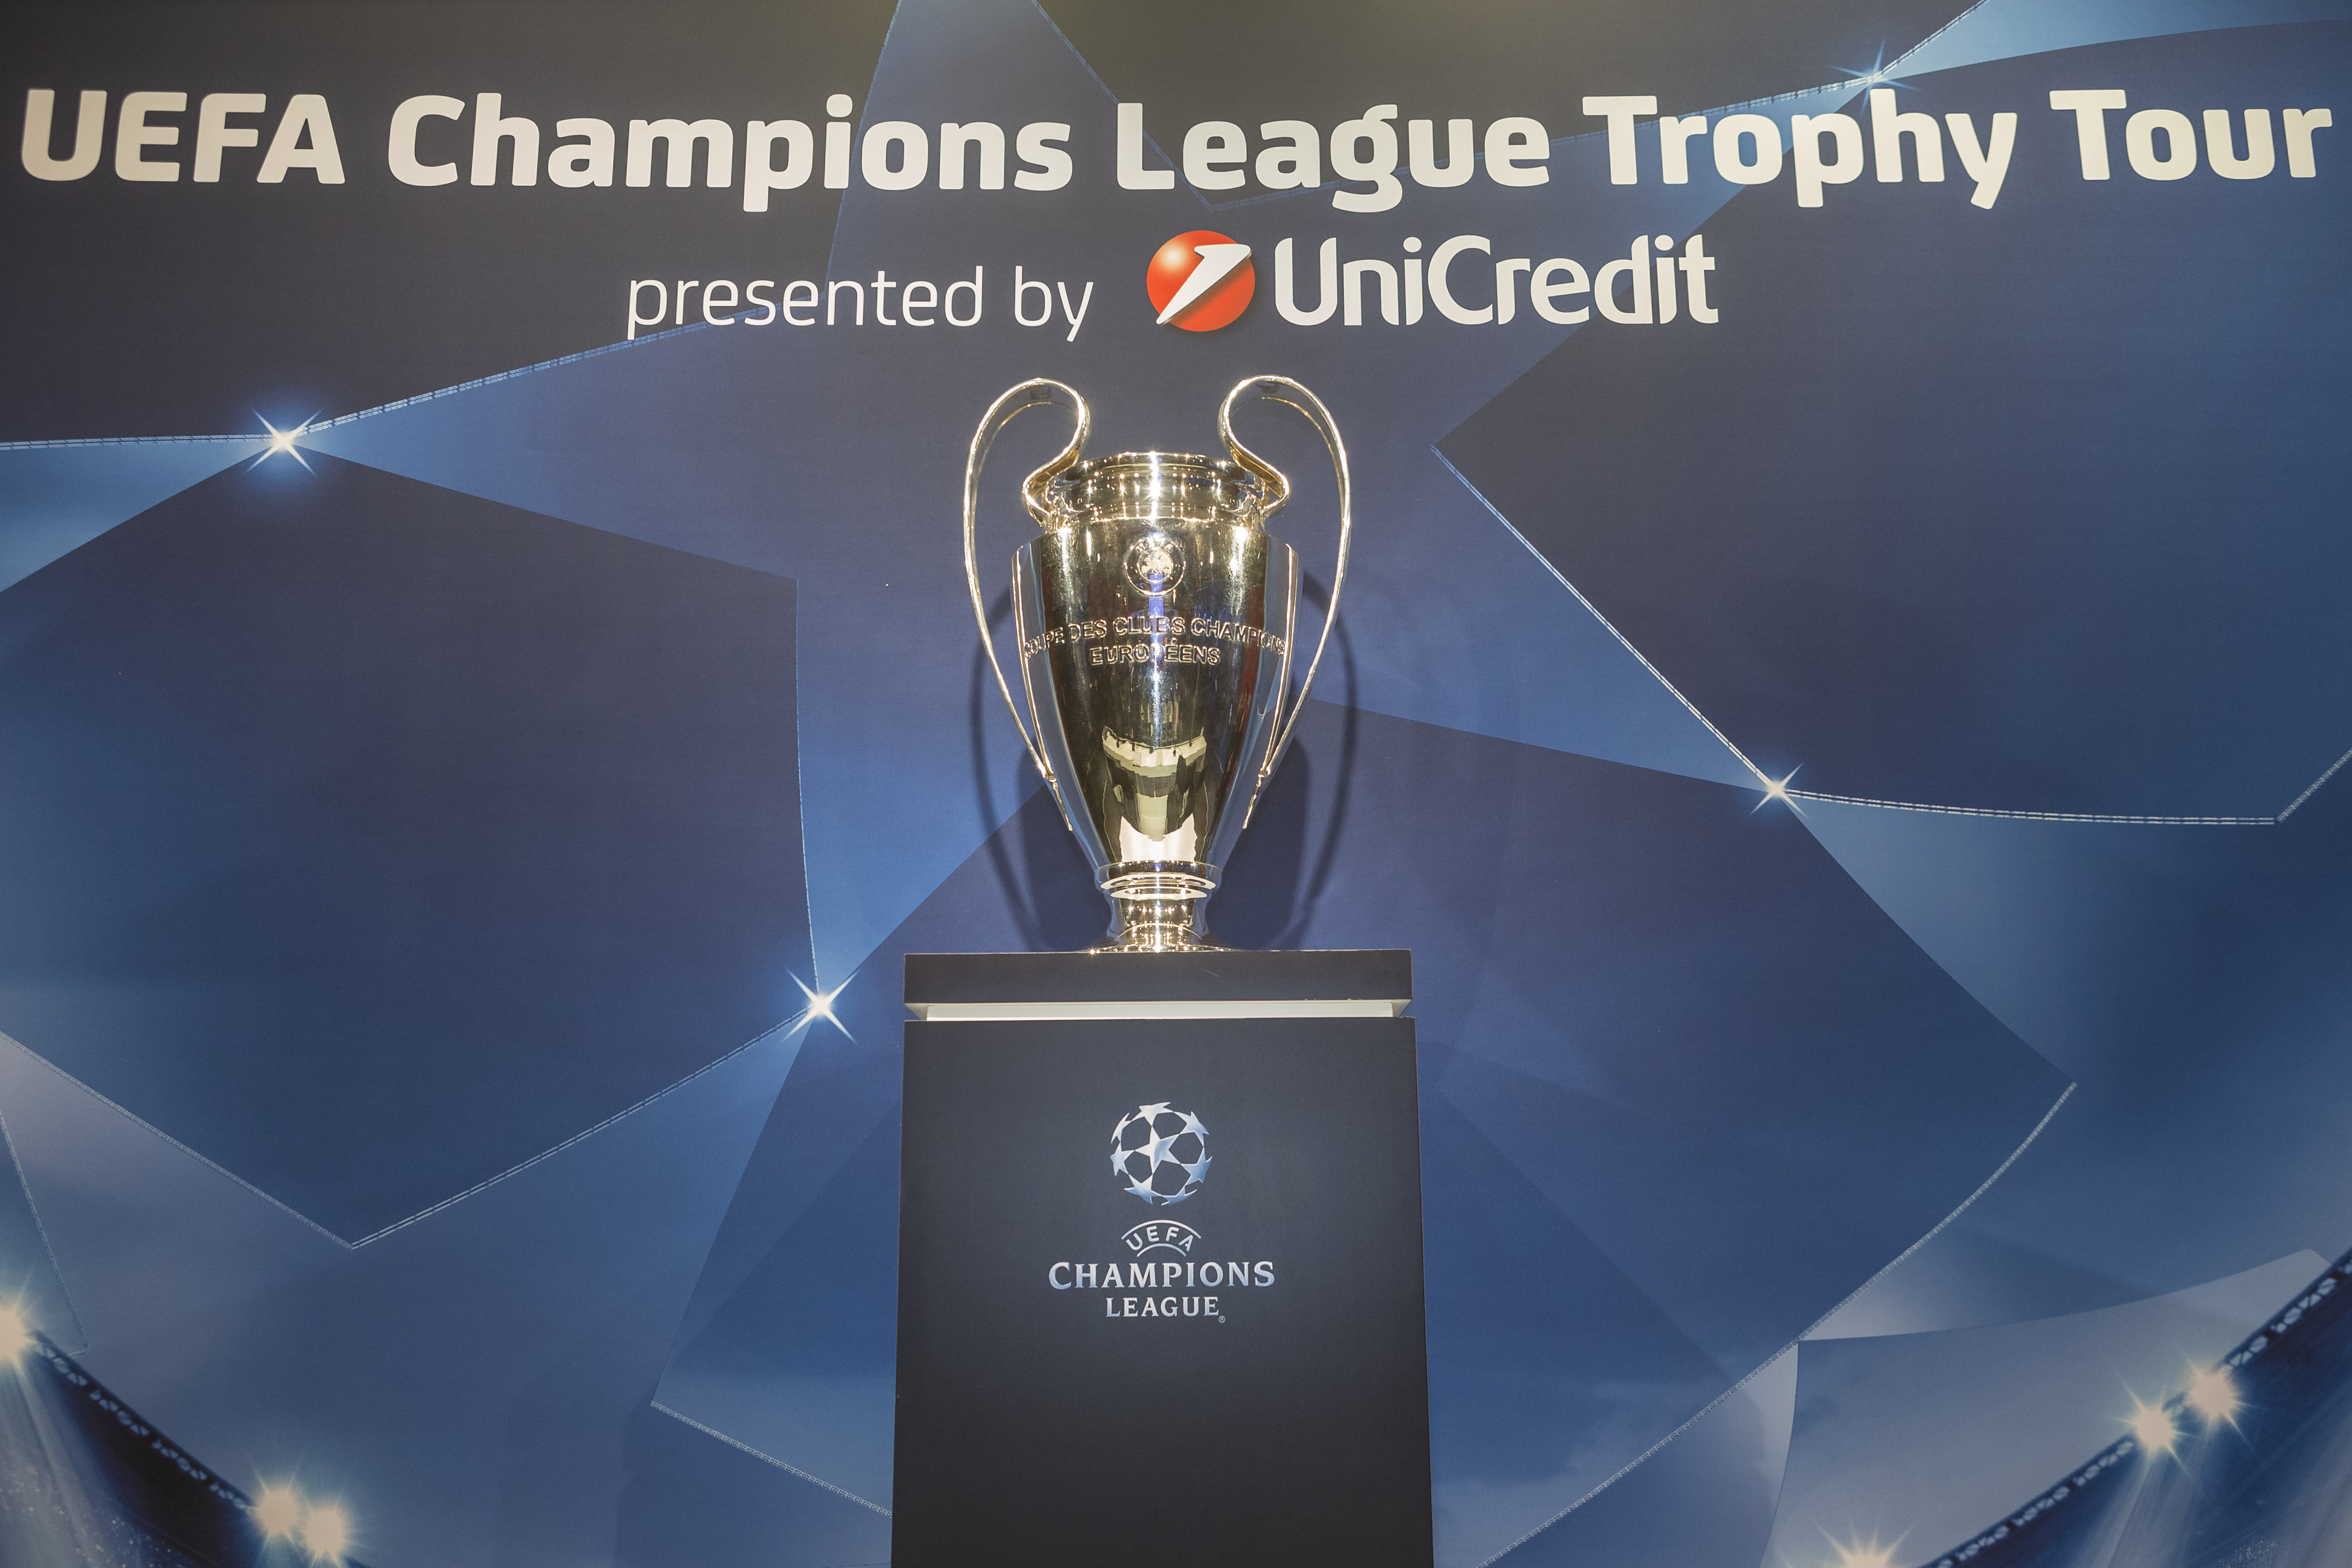 UEFA Champions League Trophy Tour Vienna Presented by UniCredit